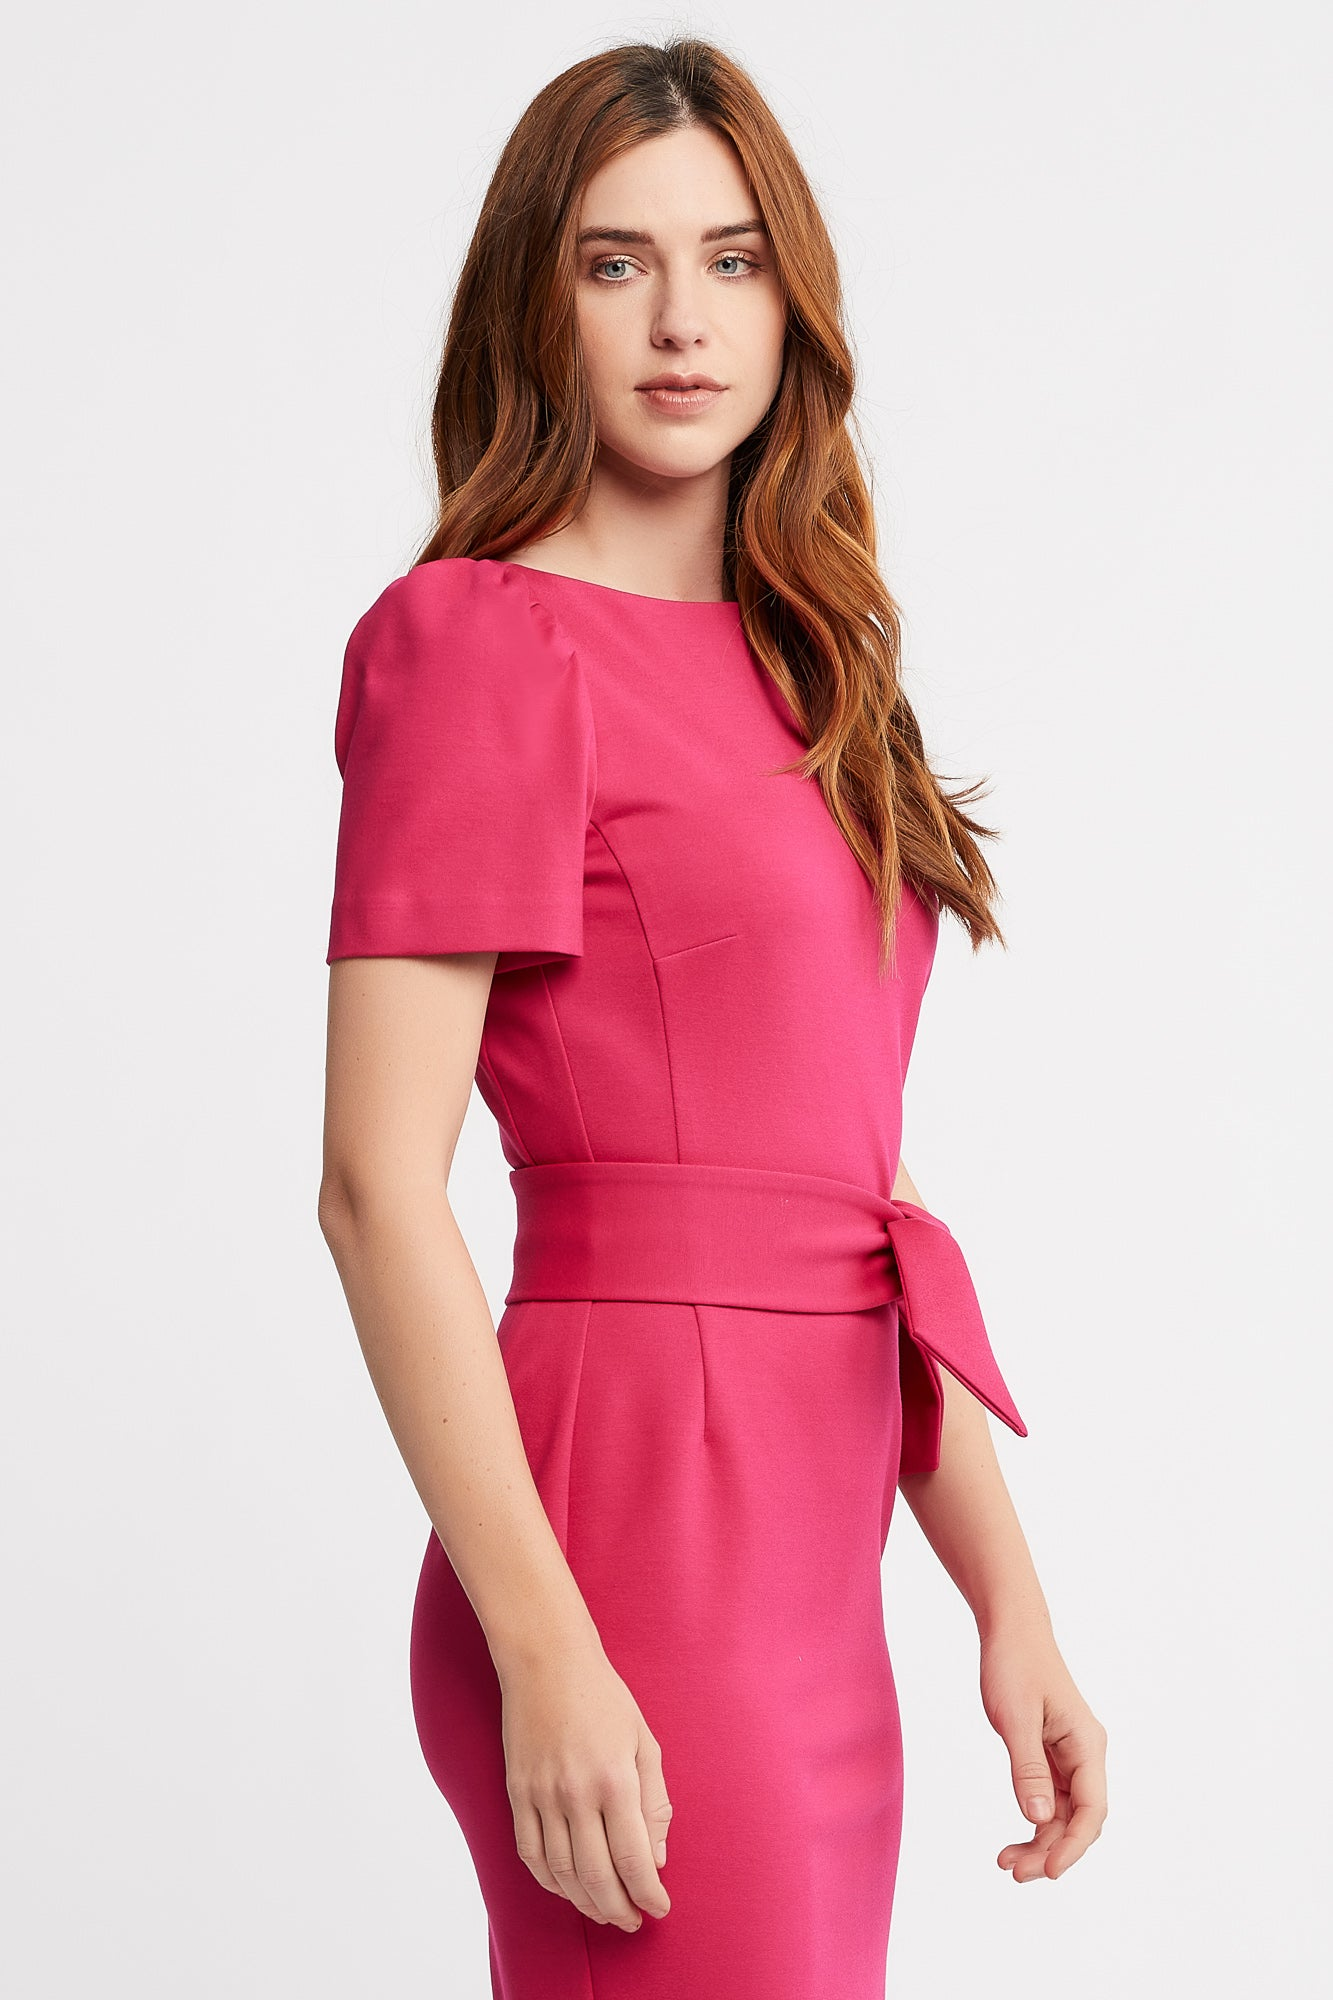 Ruth Short Sleeve Sheath Fuchsia Work and Cocktail  Dress with Belt